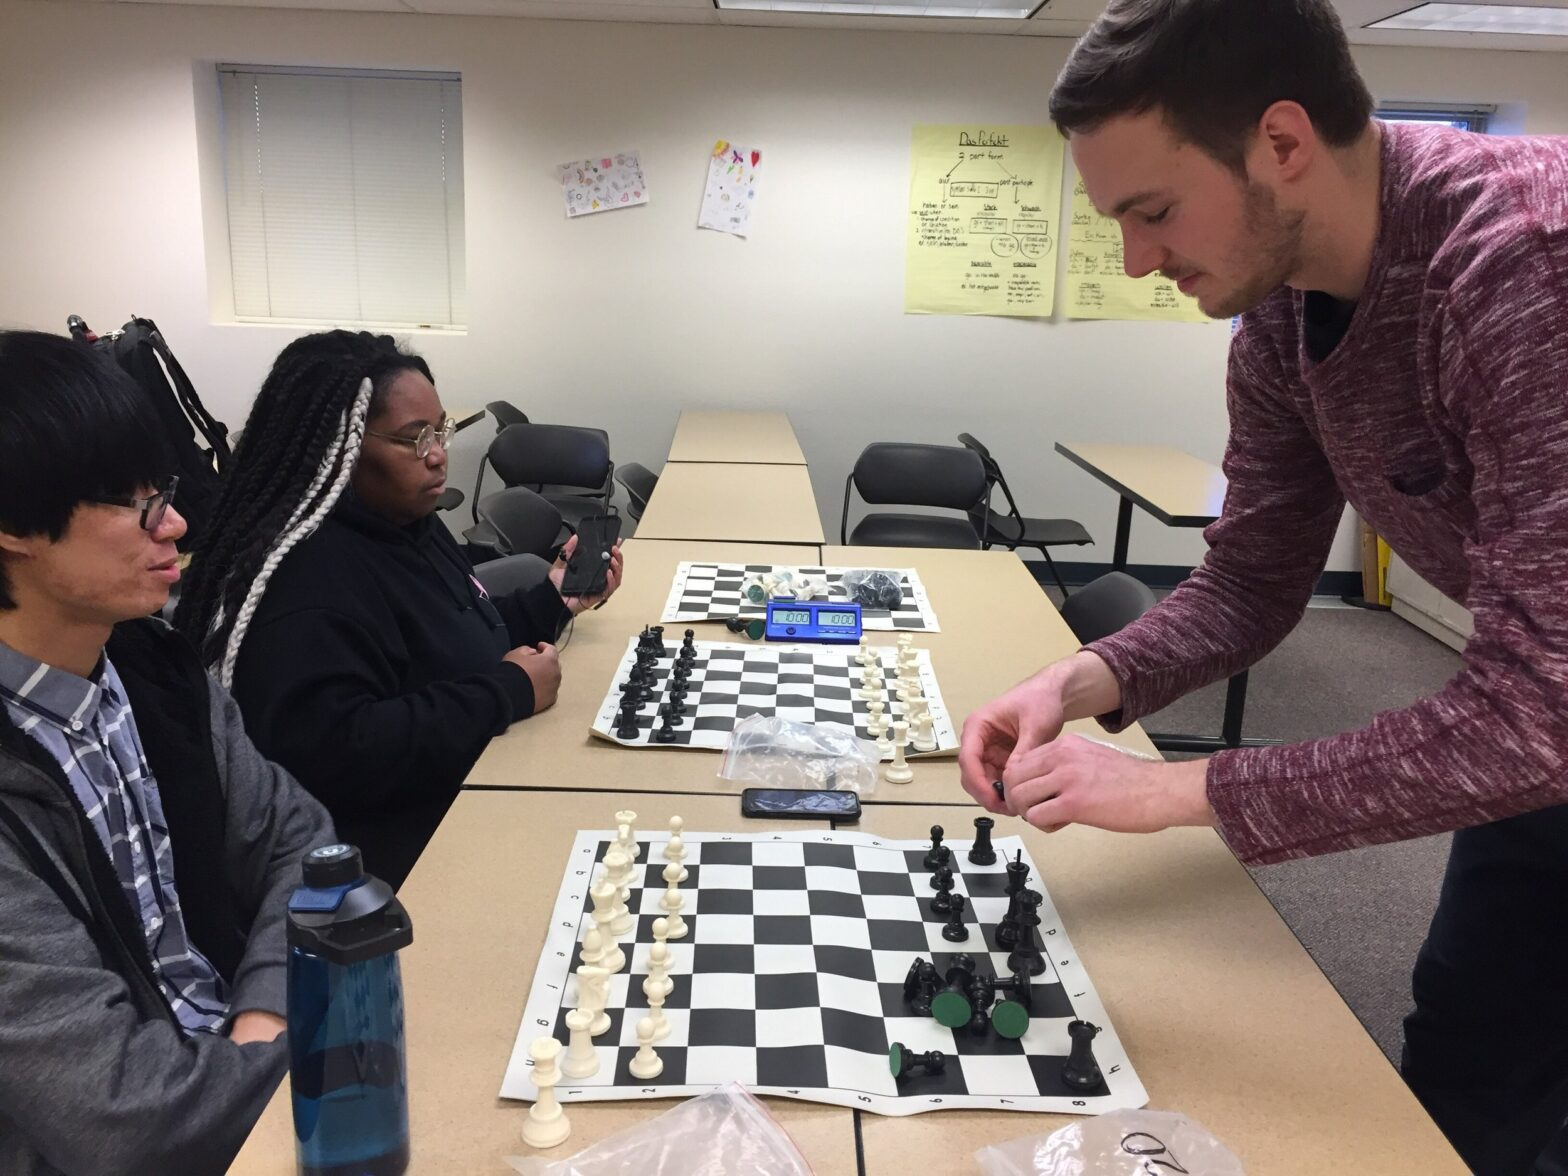 Chess Club charter: training minds outside of school